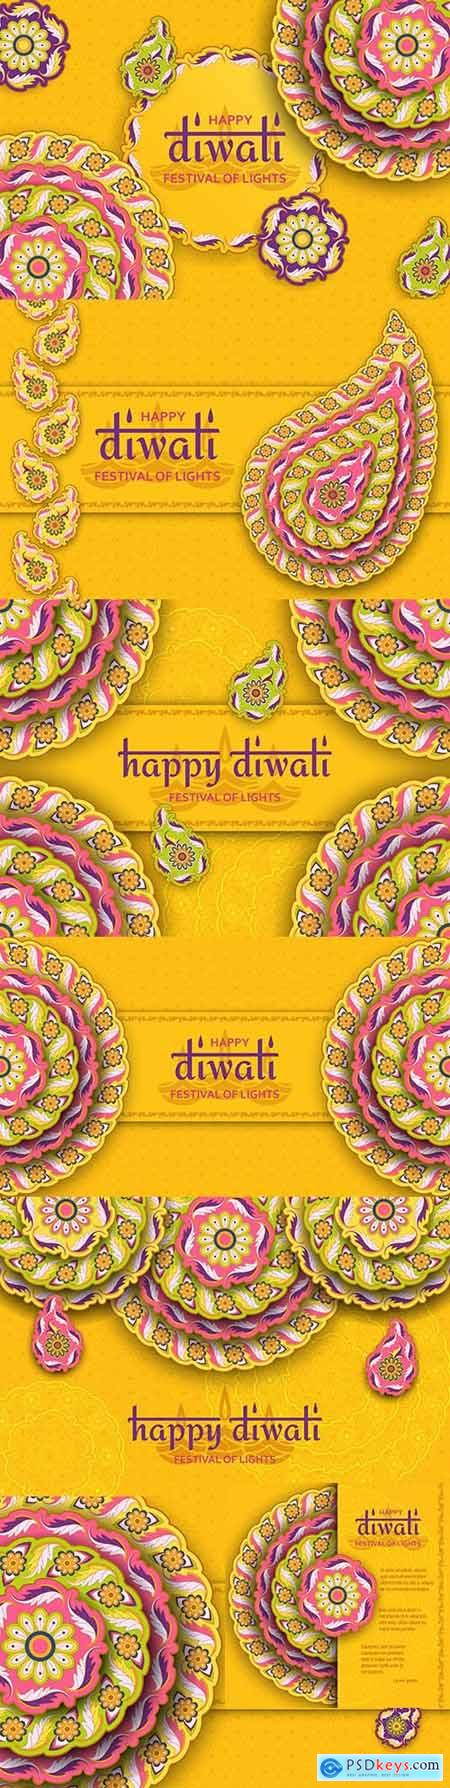 Happy Diwali festival lights yellow template with floral pattern